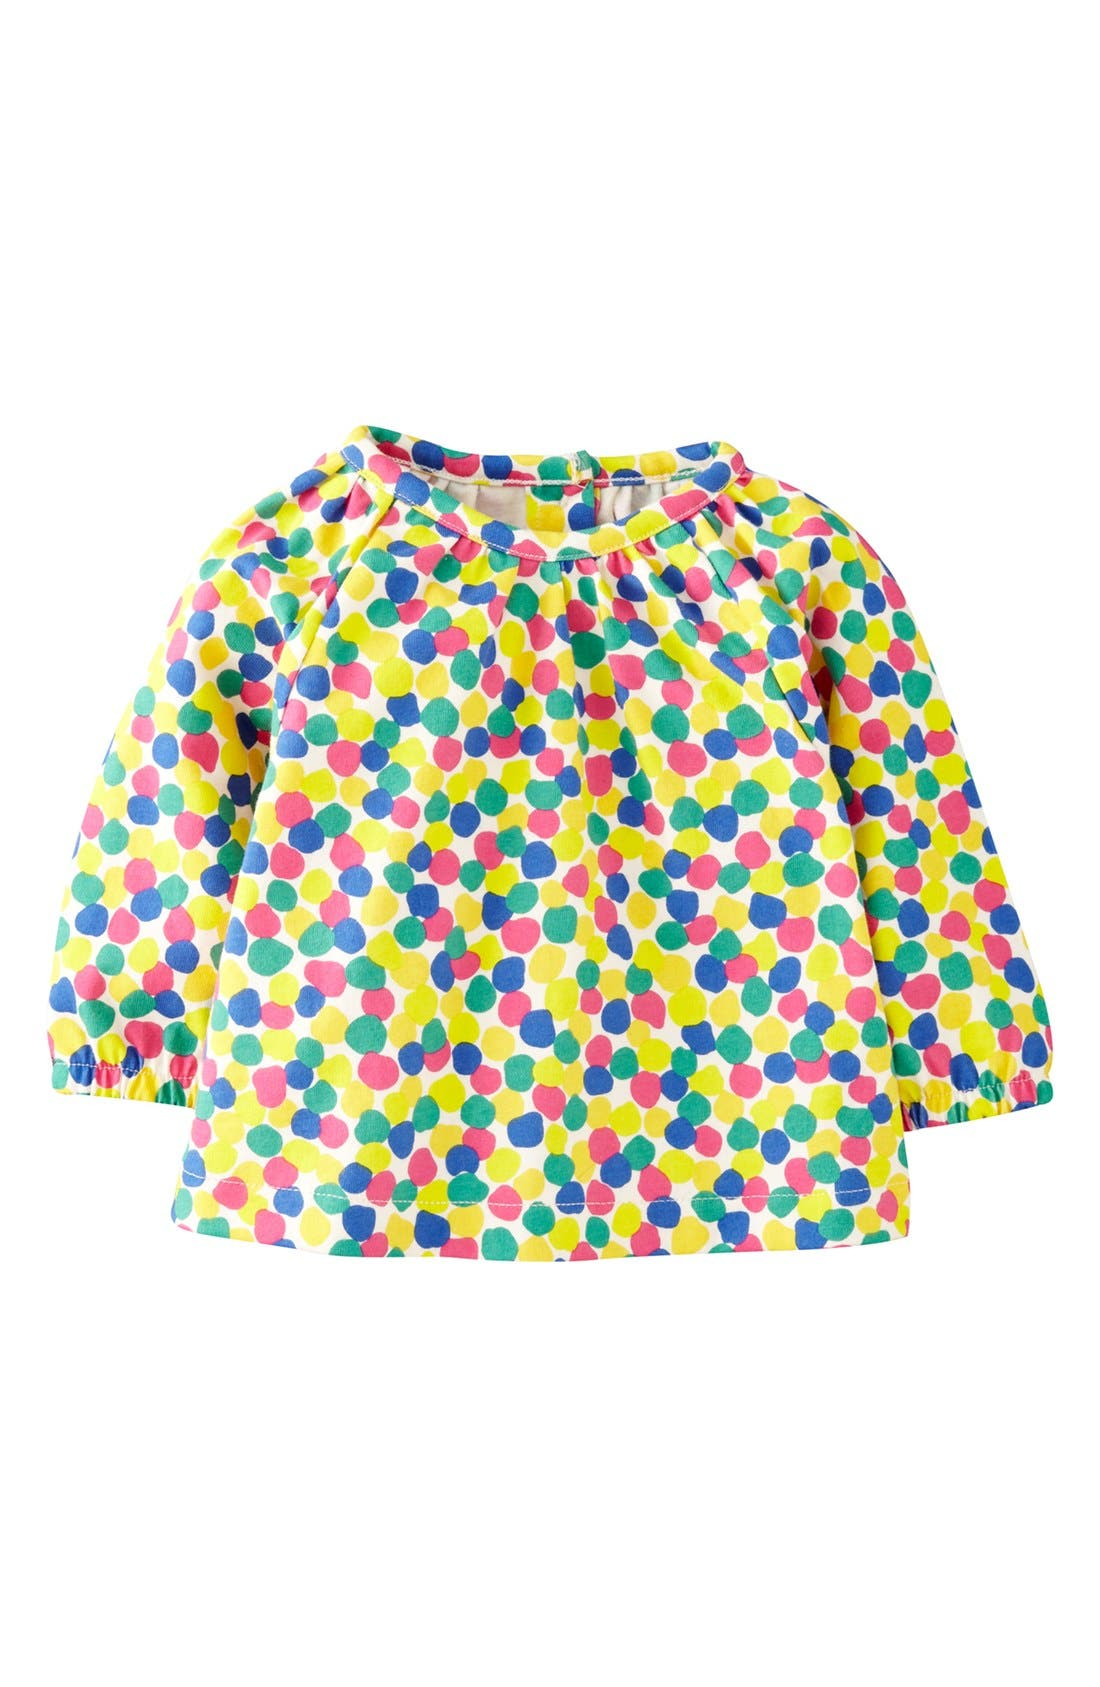 Alternate Image 1 Selected - Mini Boden Long Sleeve Jersey Top (Baby Girls)